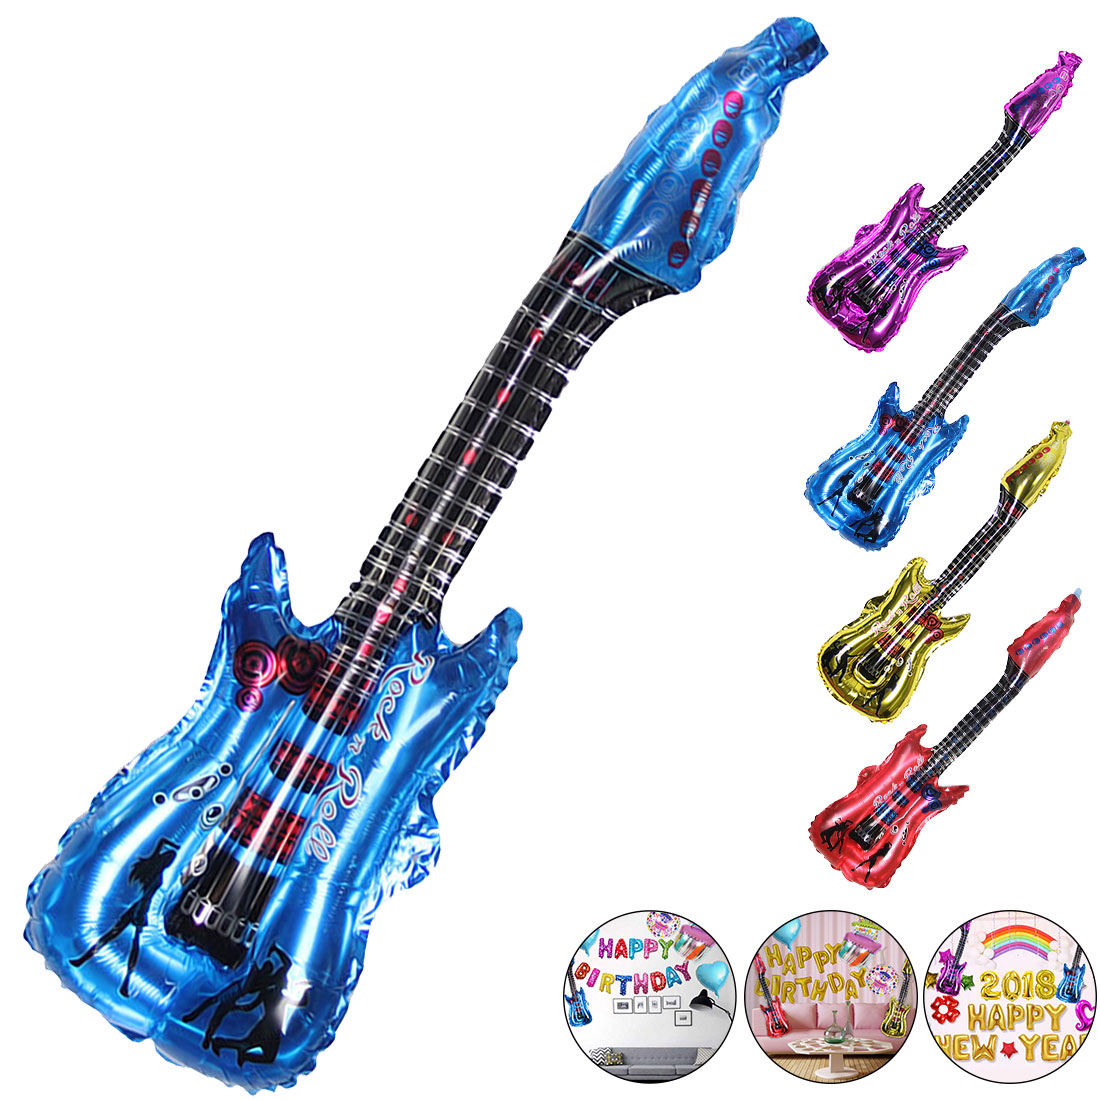 Straightforward 4 Colors 1pcs/lot 85x30cm Cartoon Guitar Balloons Inflatable Air Globo Party Supplies Kids Toys Birthday Ballon Classic Toys Event & Party Home & Garden